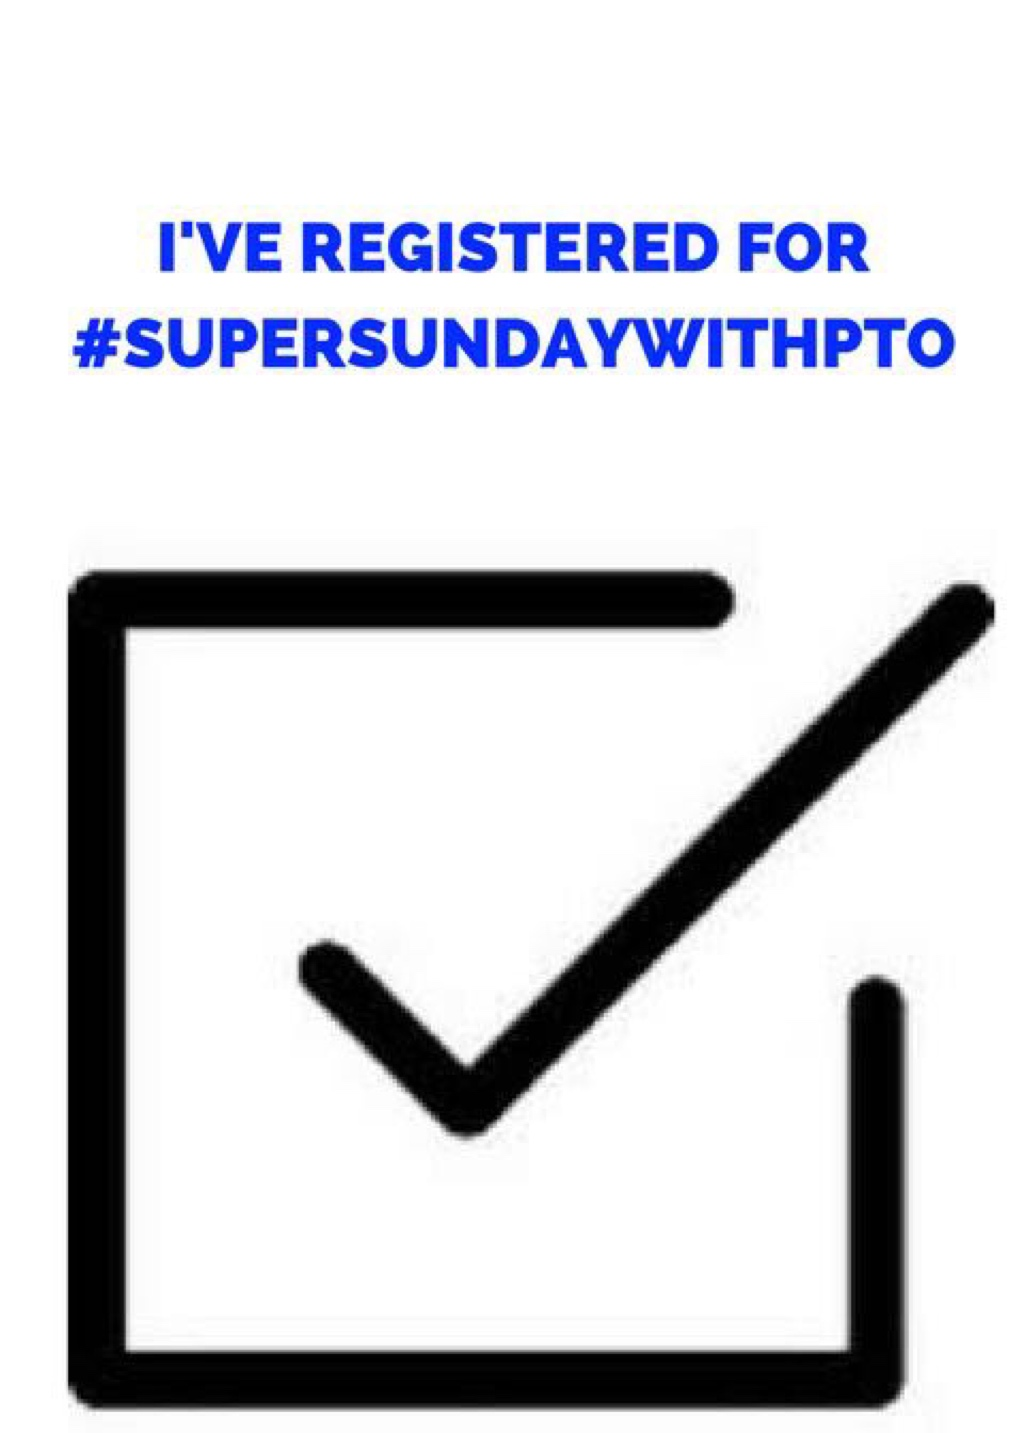 HAVE YOU REGISTERED???? #supersundaywithpto